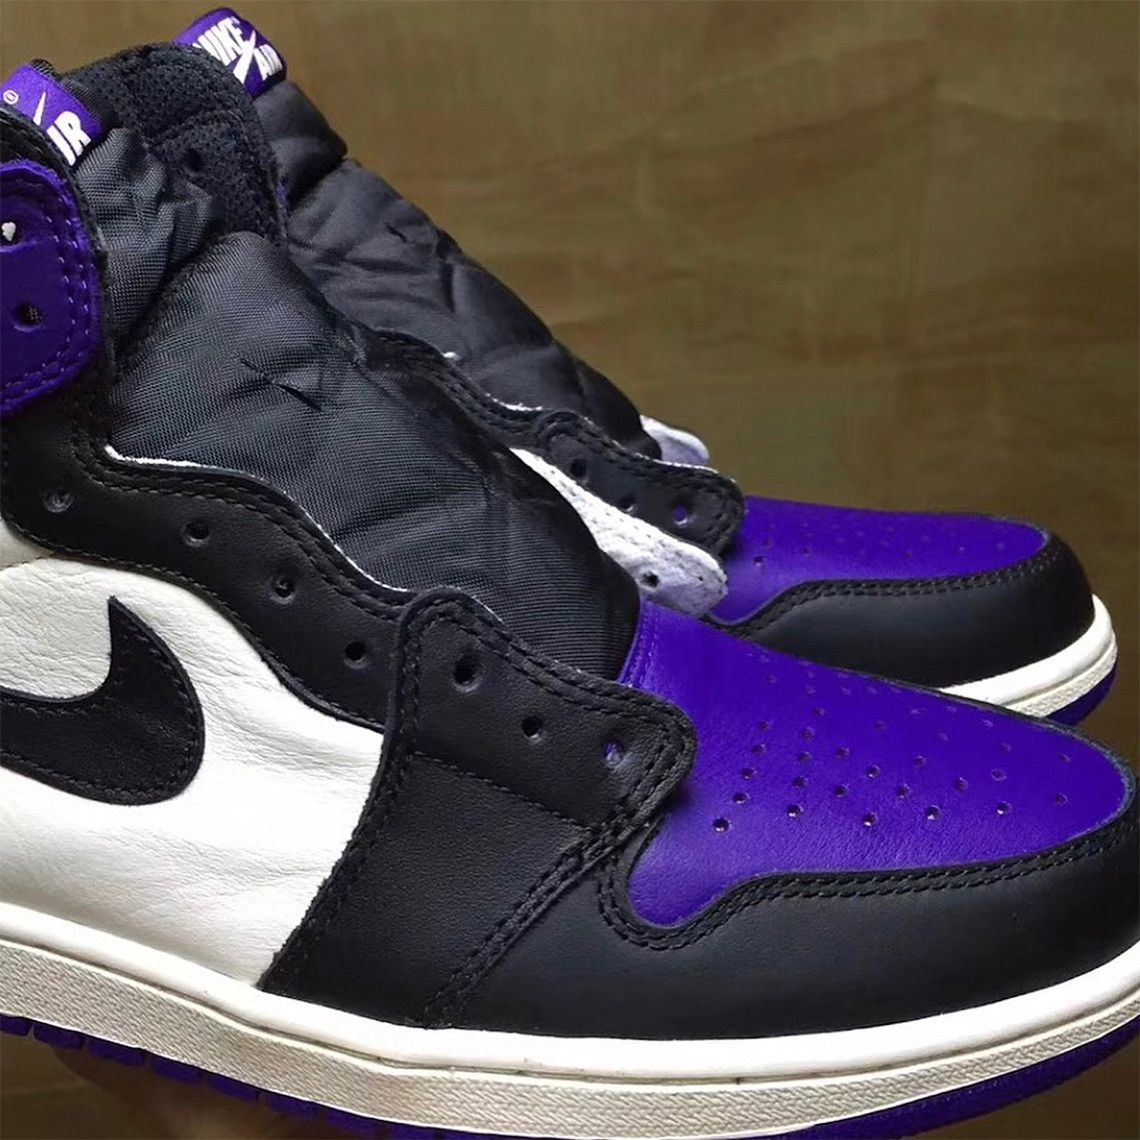 "low priced 0538a faee4 Up Close With The Air Jordan 1 Retro High OG ""Court Purple"""